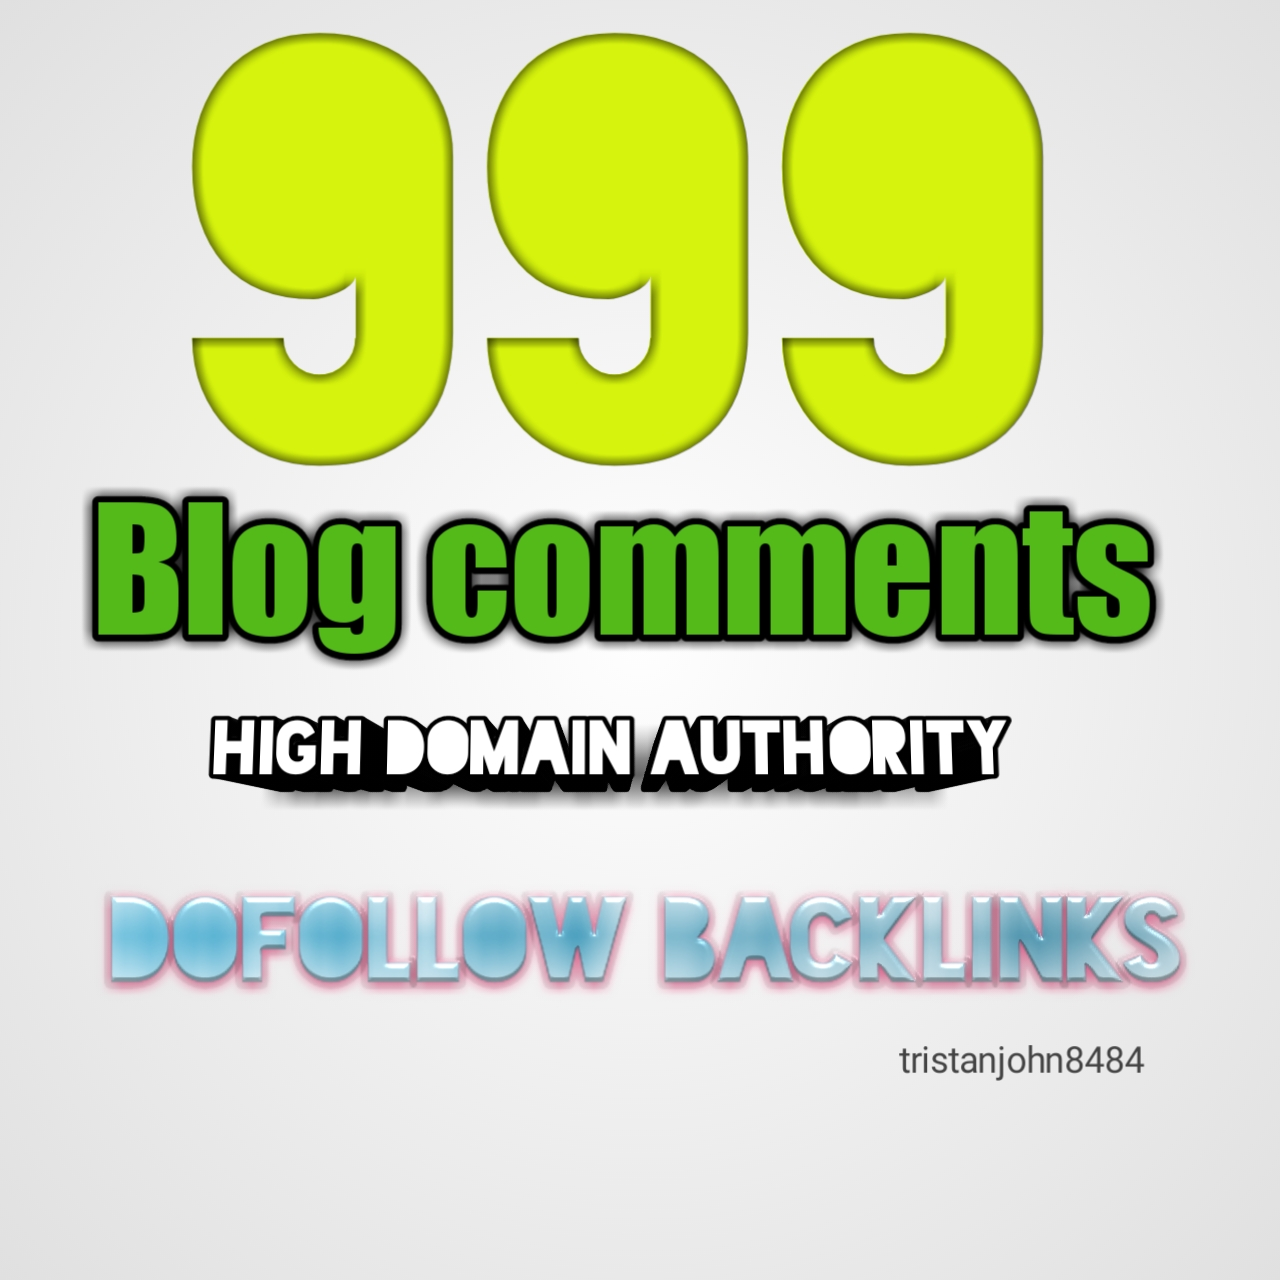 999 Blog Comments Backlinks For Increase Link Juice And Faster Index on Google